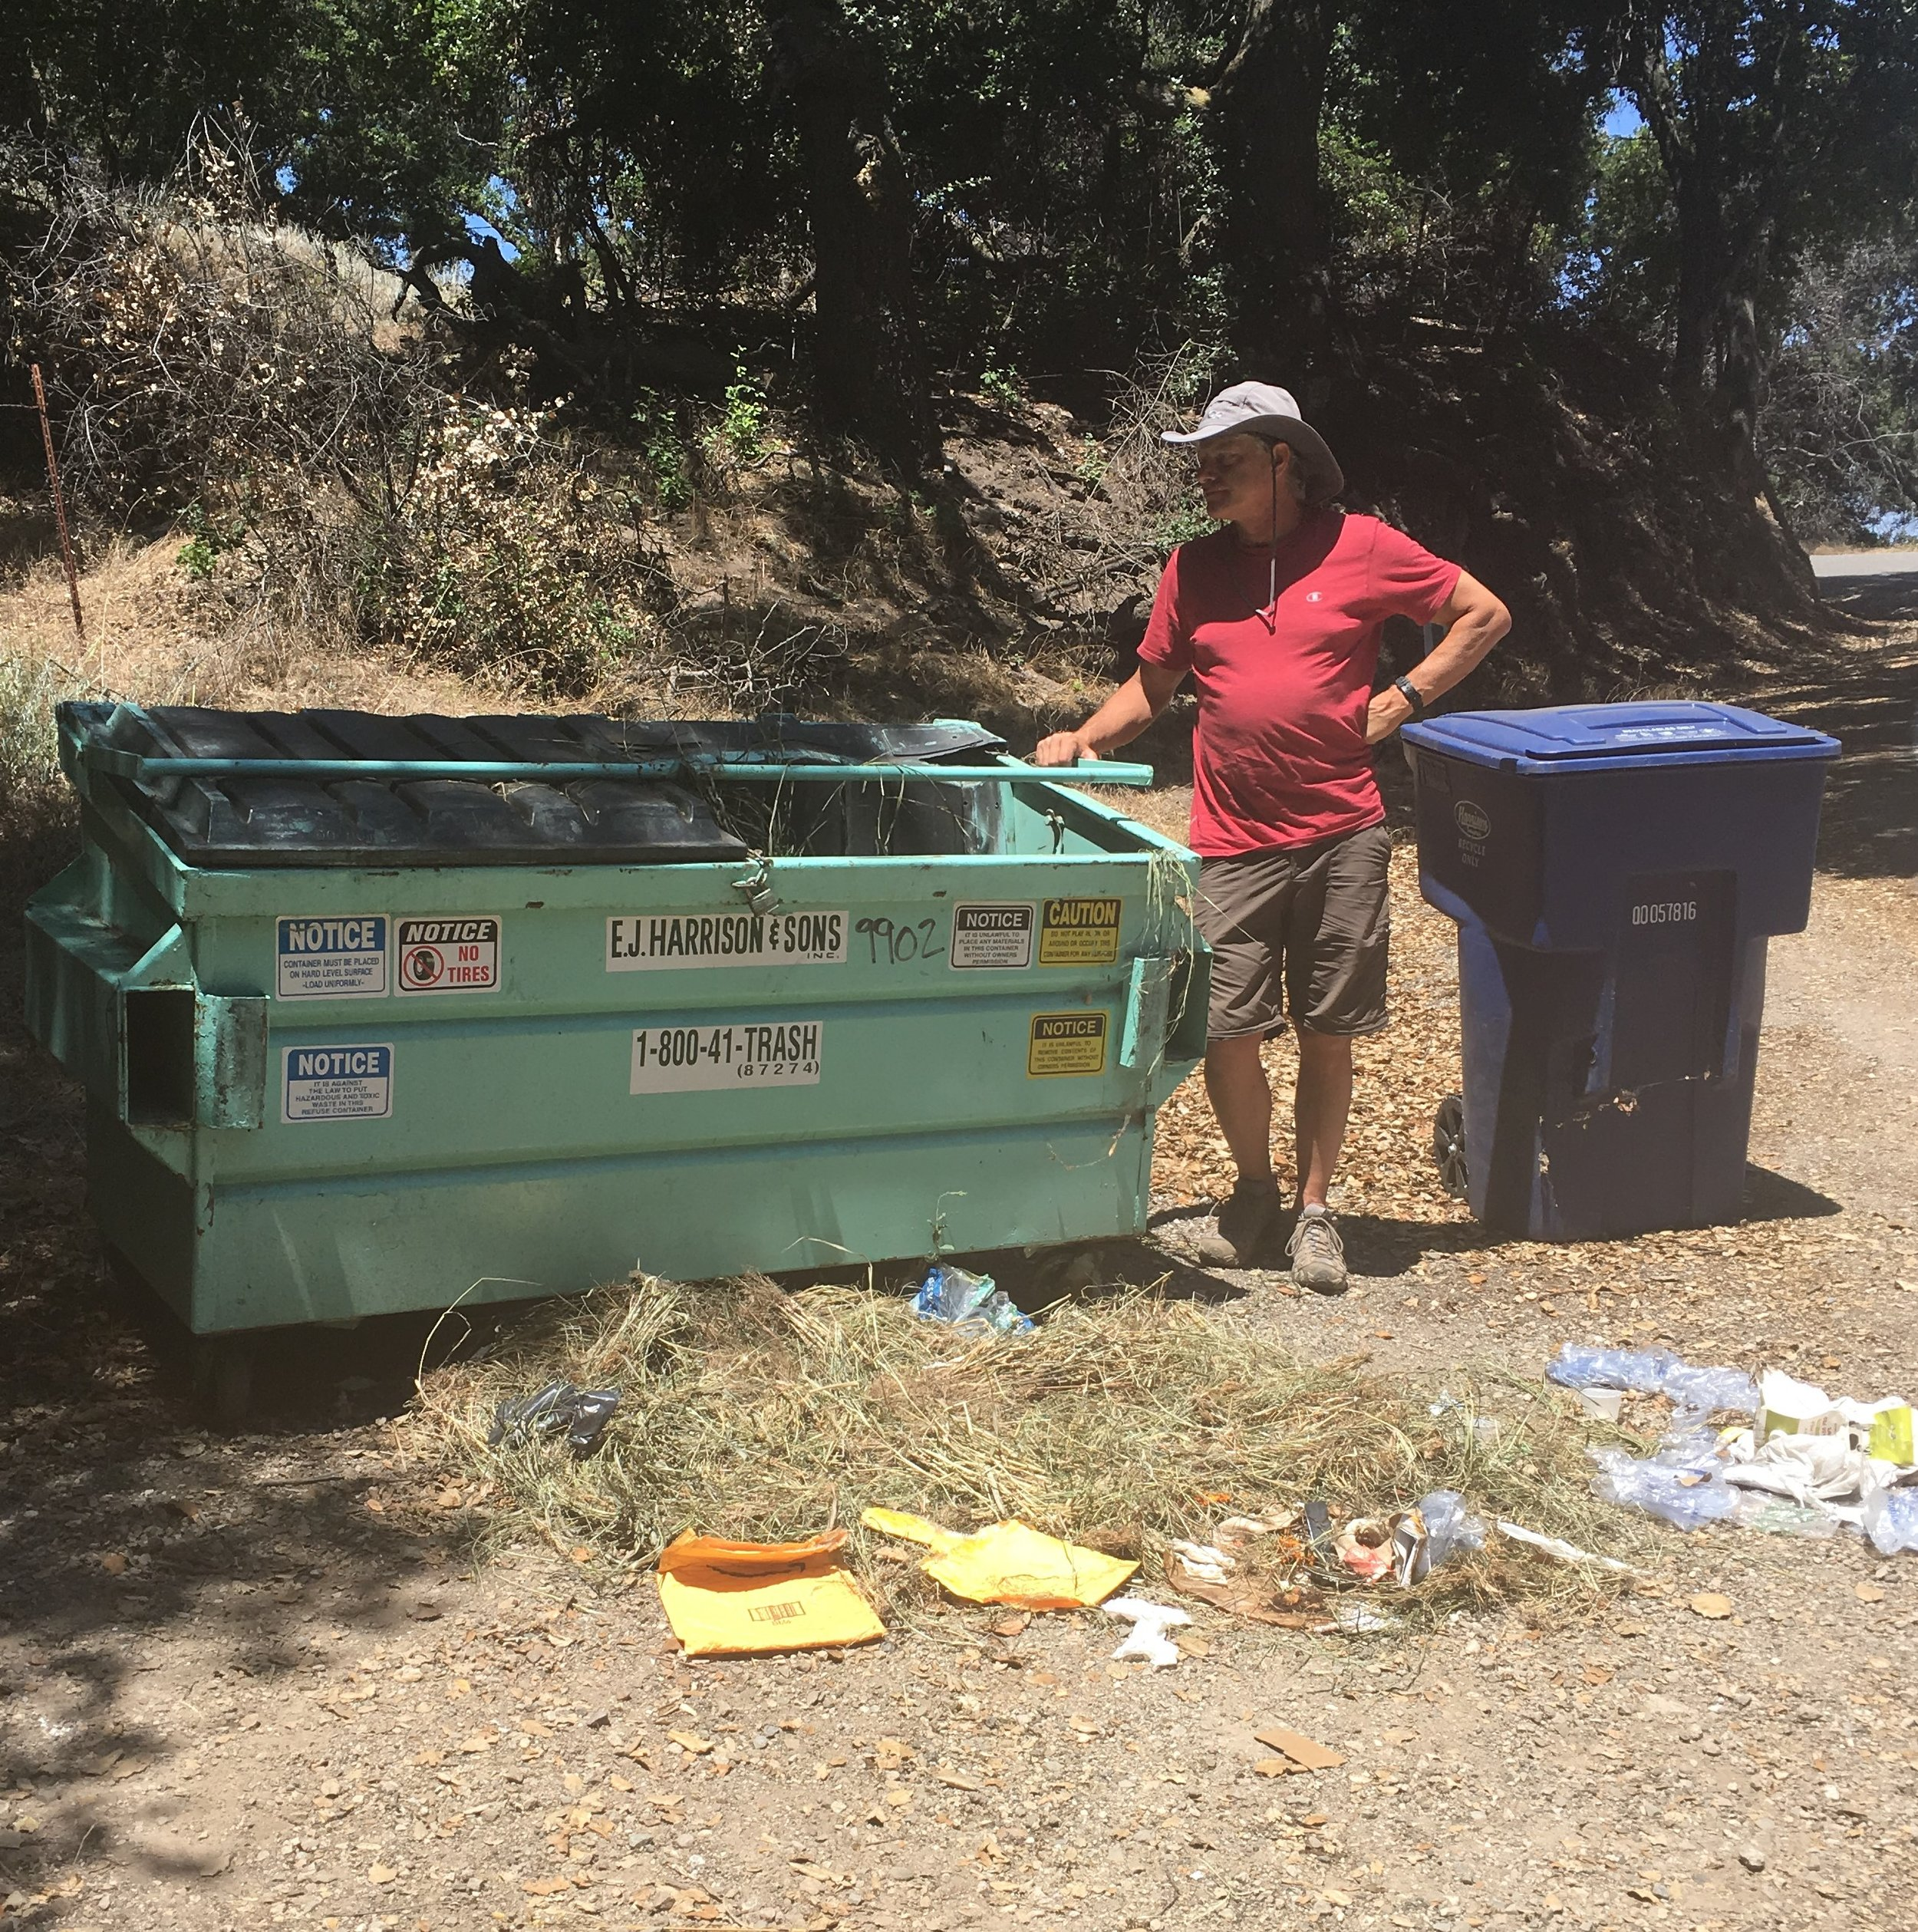 ERIC CARLSON inspects the smashed-in metal cover of Meher Mount's dumpster after a surprise visit - probably from a bear. (Photo: Ellen Kwiatkowski, July 2019)